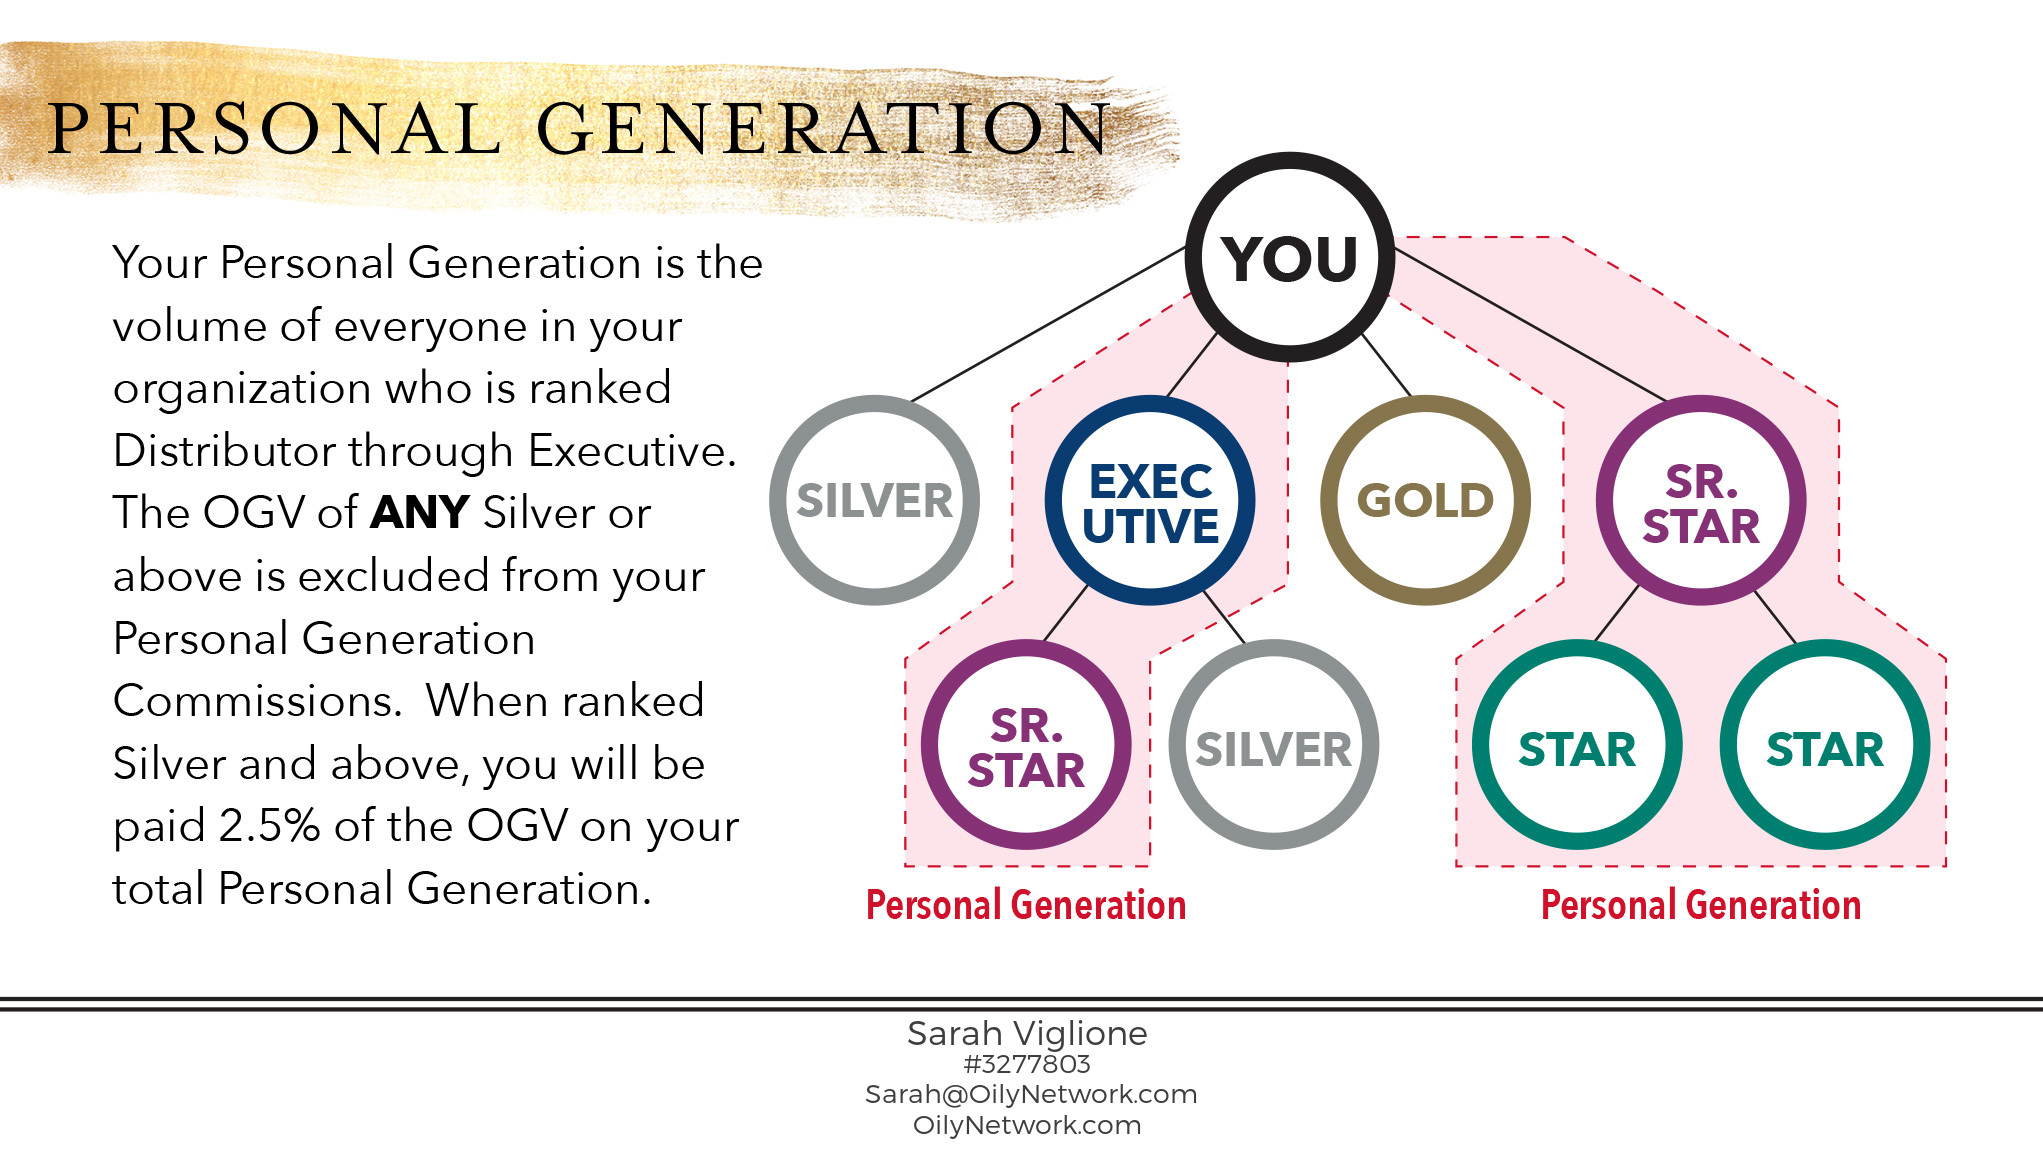 Personal Generation